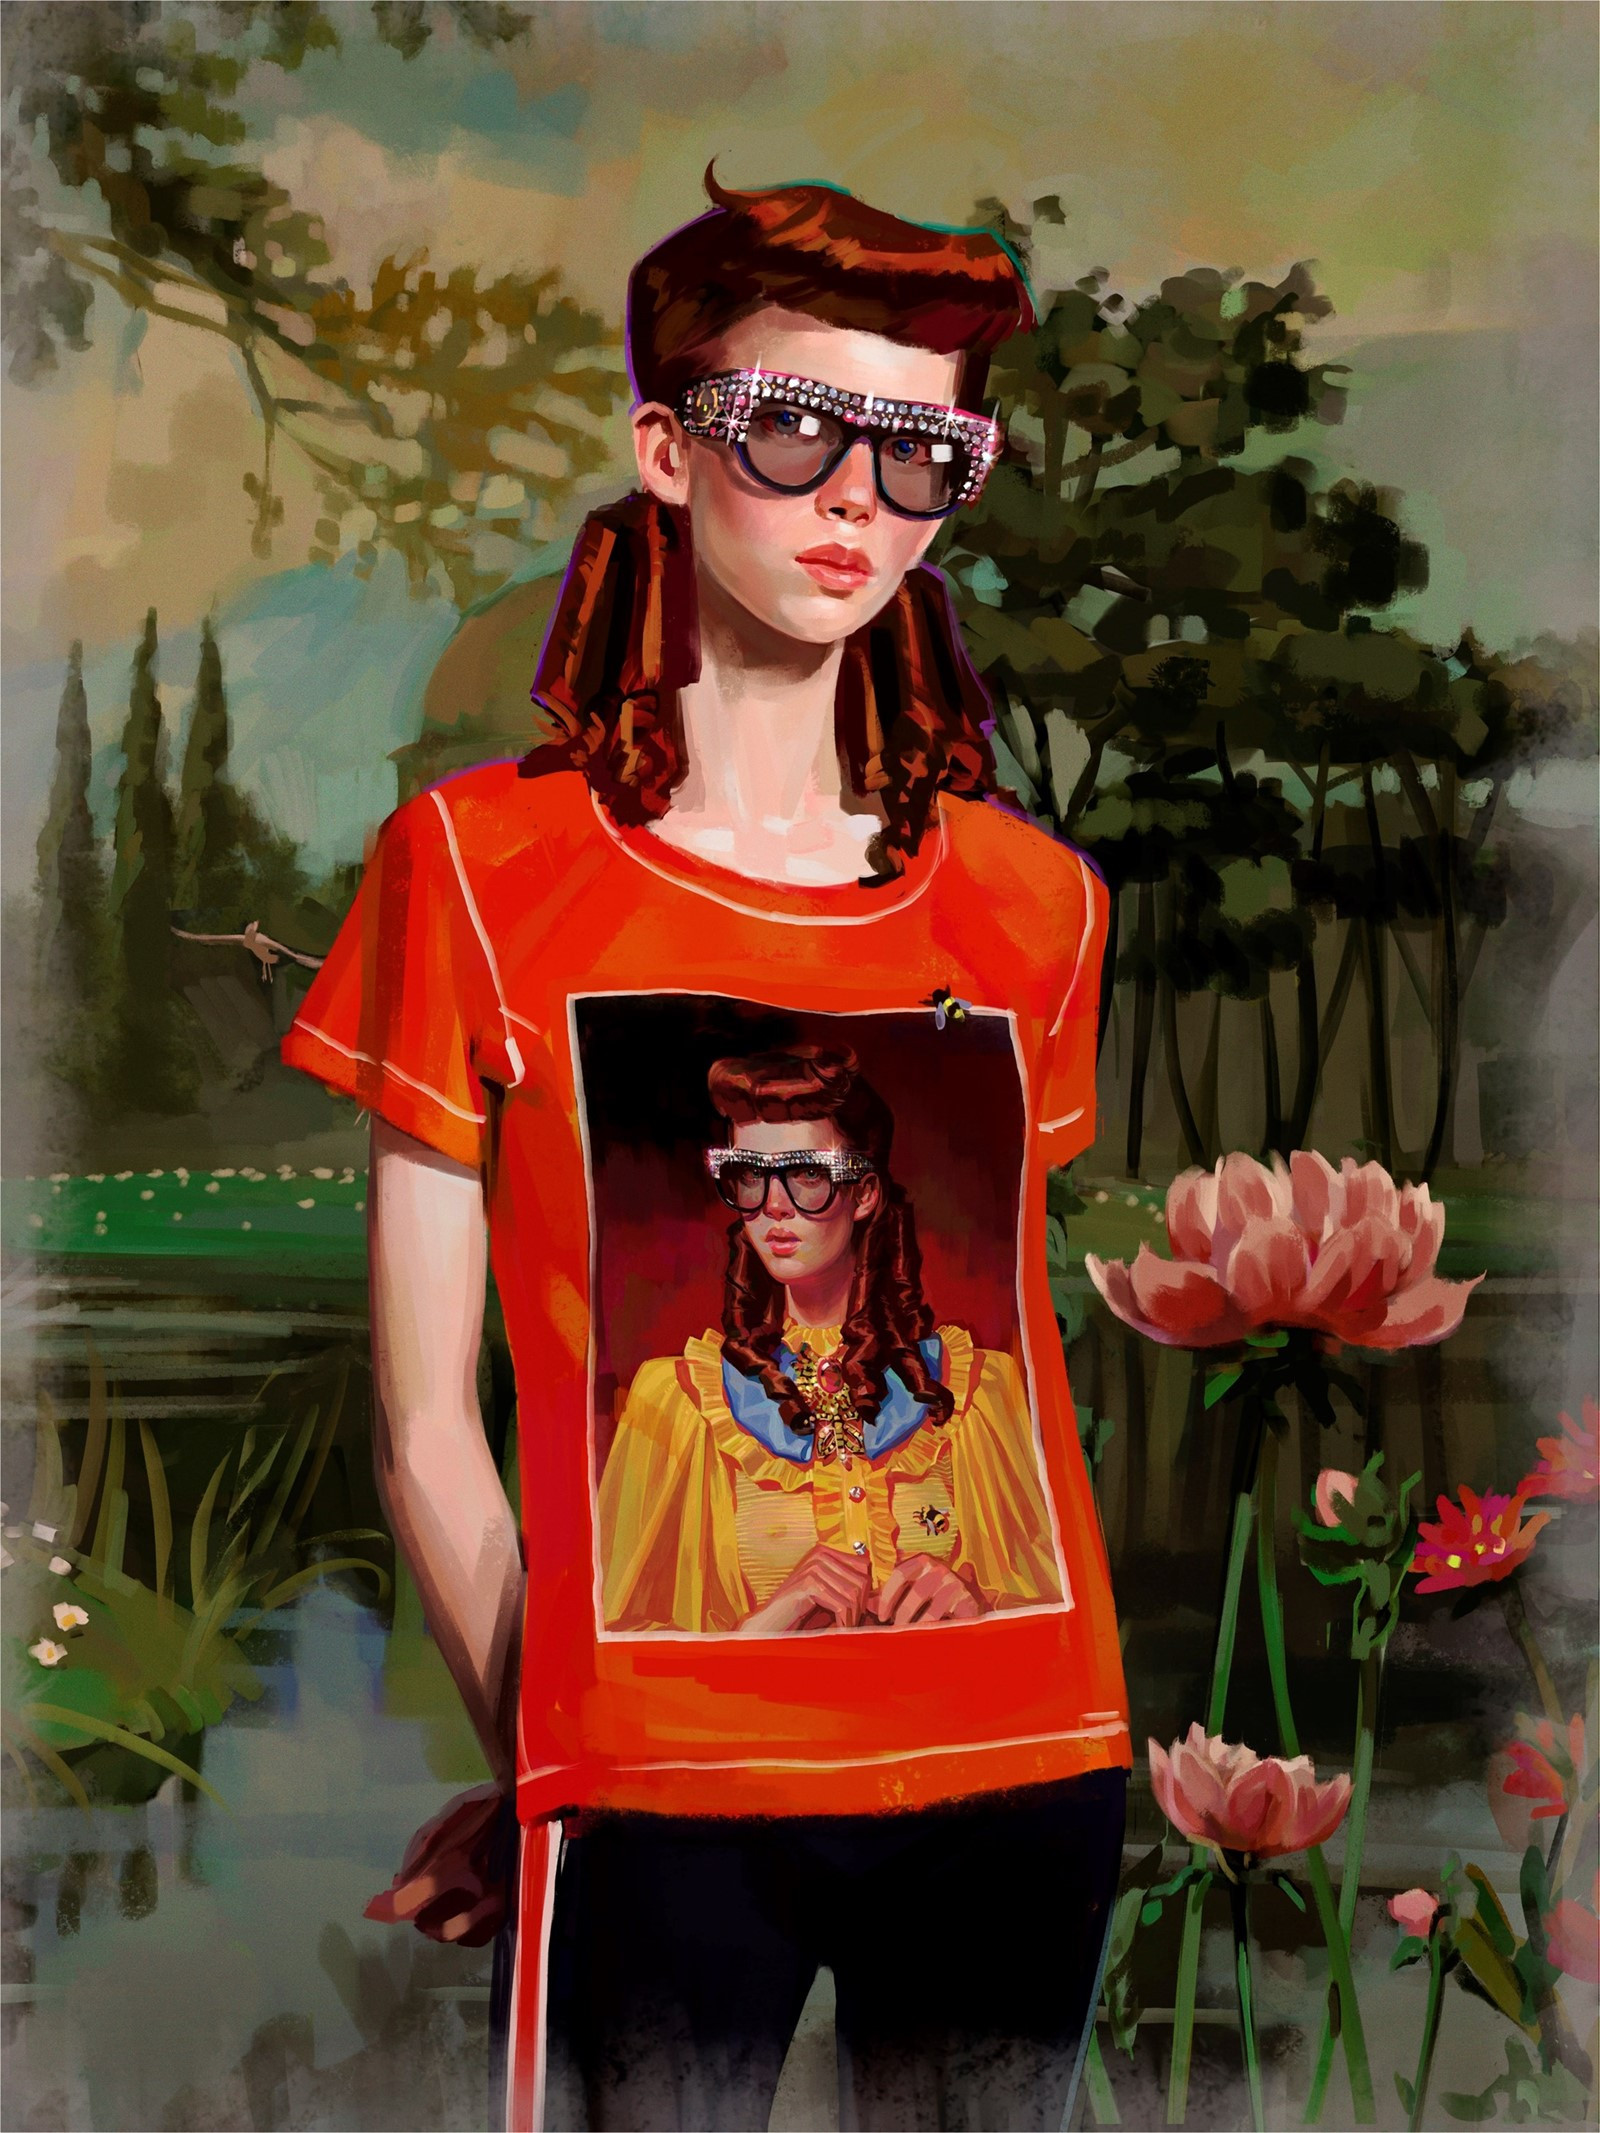 Gucci Gift Giving 2017: Digital painting by Spanish artist and illustrator Ignasi Monreal.